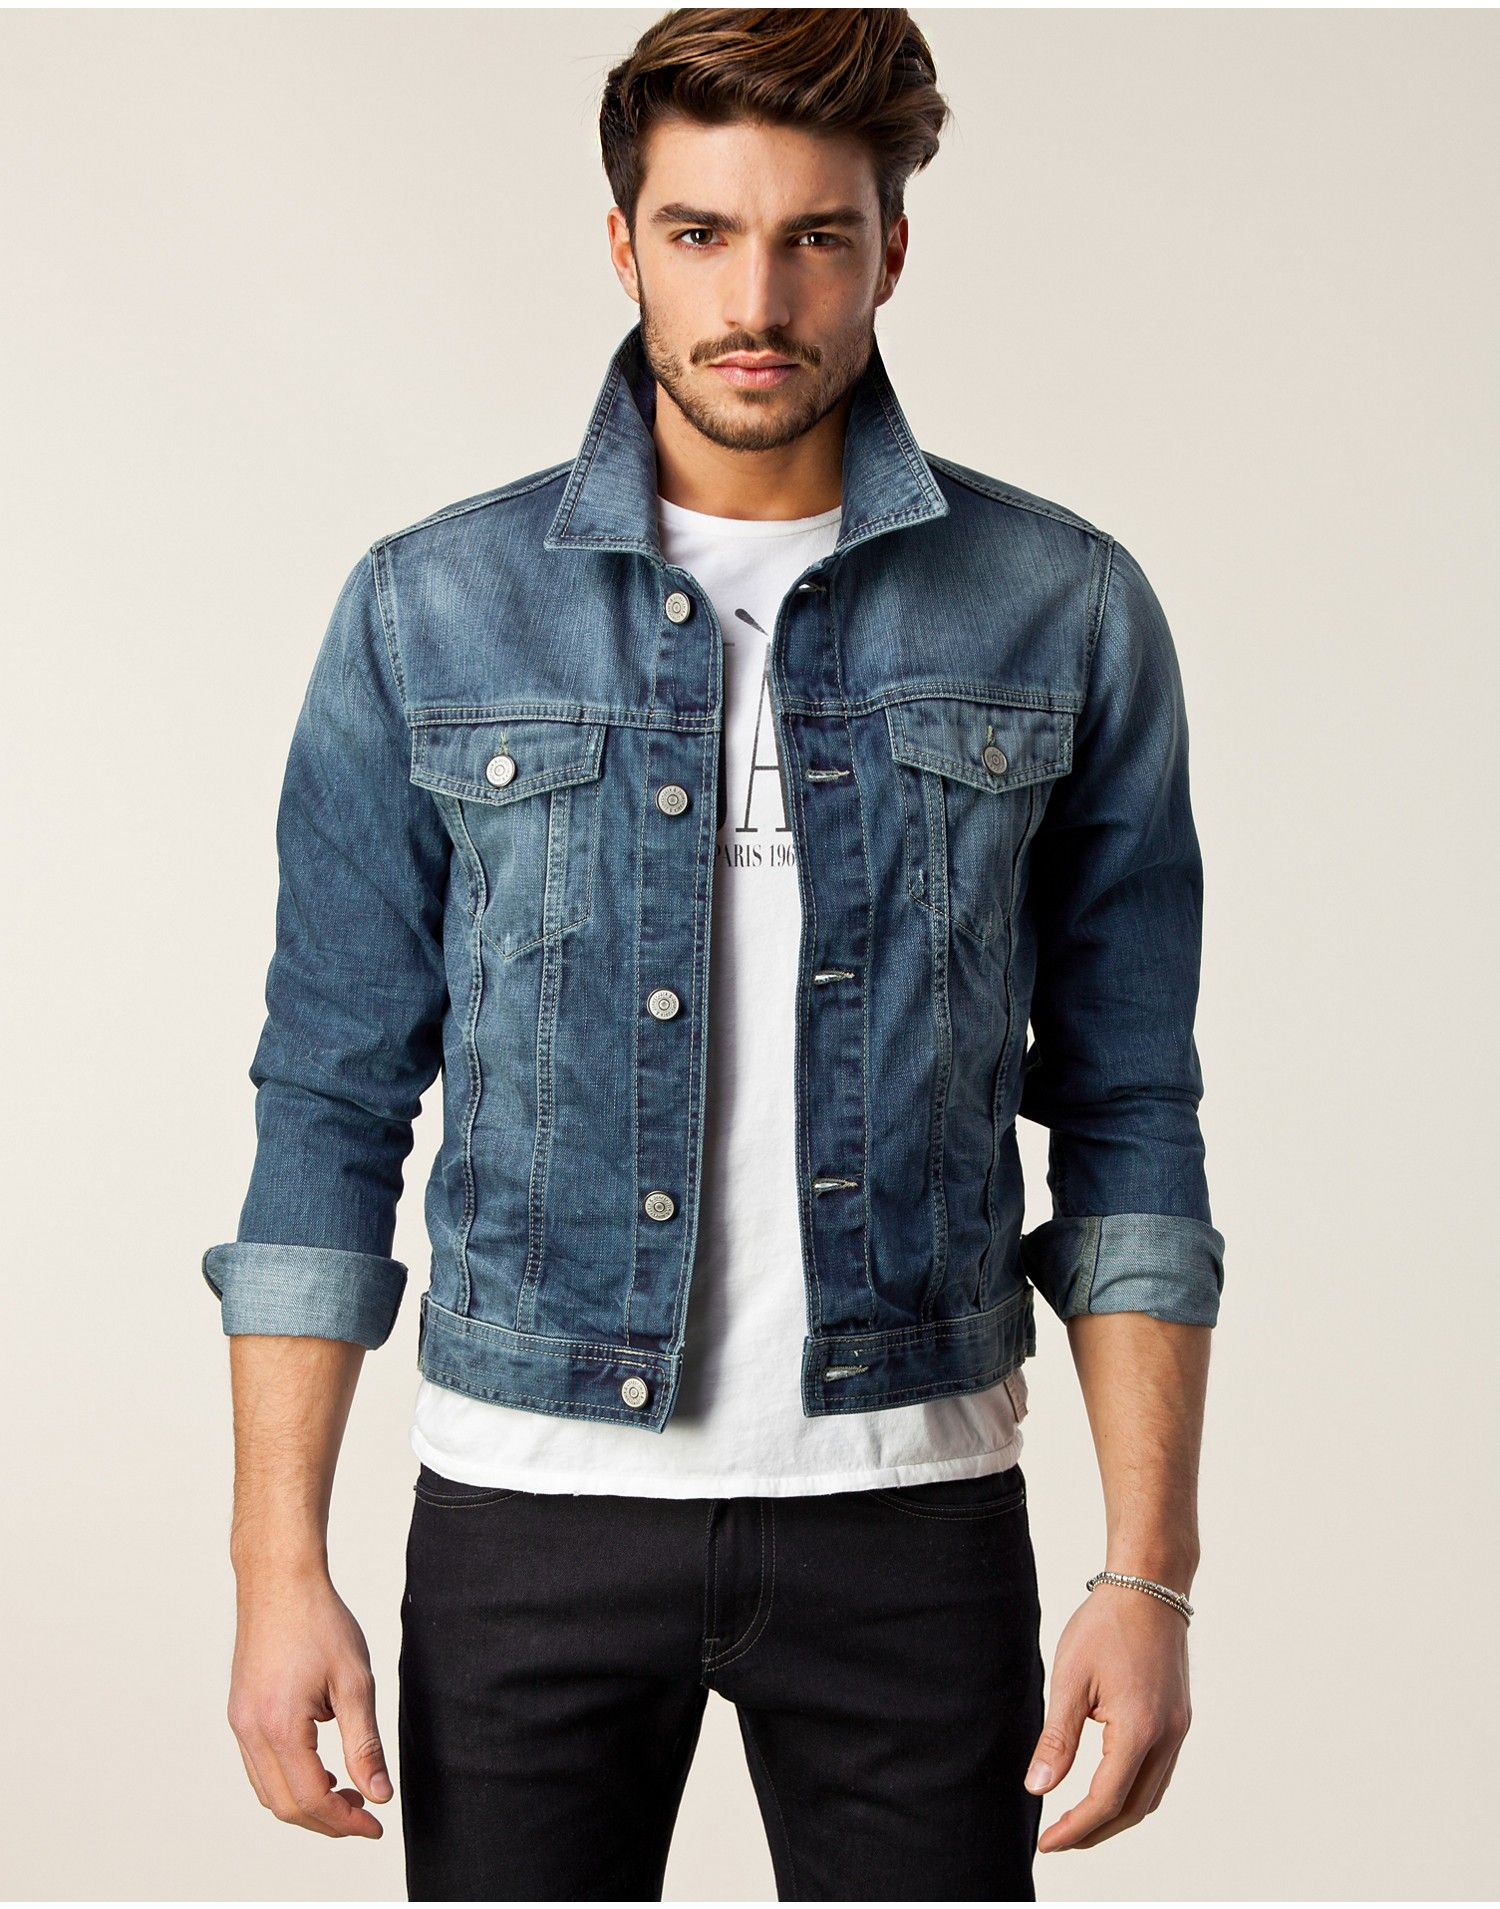 10 Best images about Denim Jacket Ideas on Pinterest | Men's jean ...